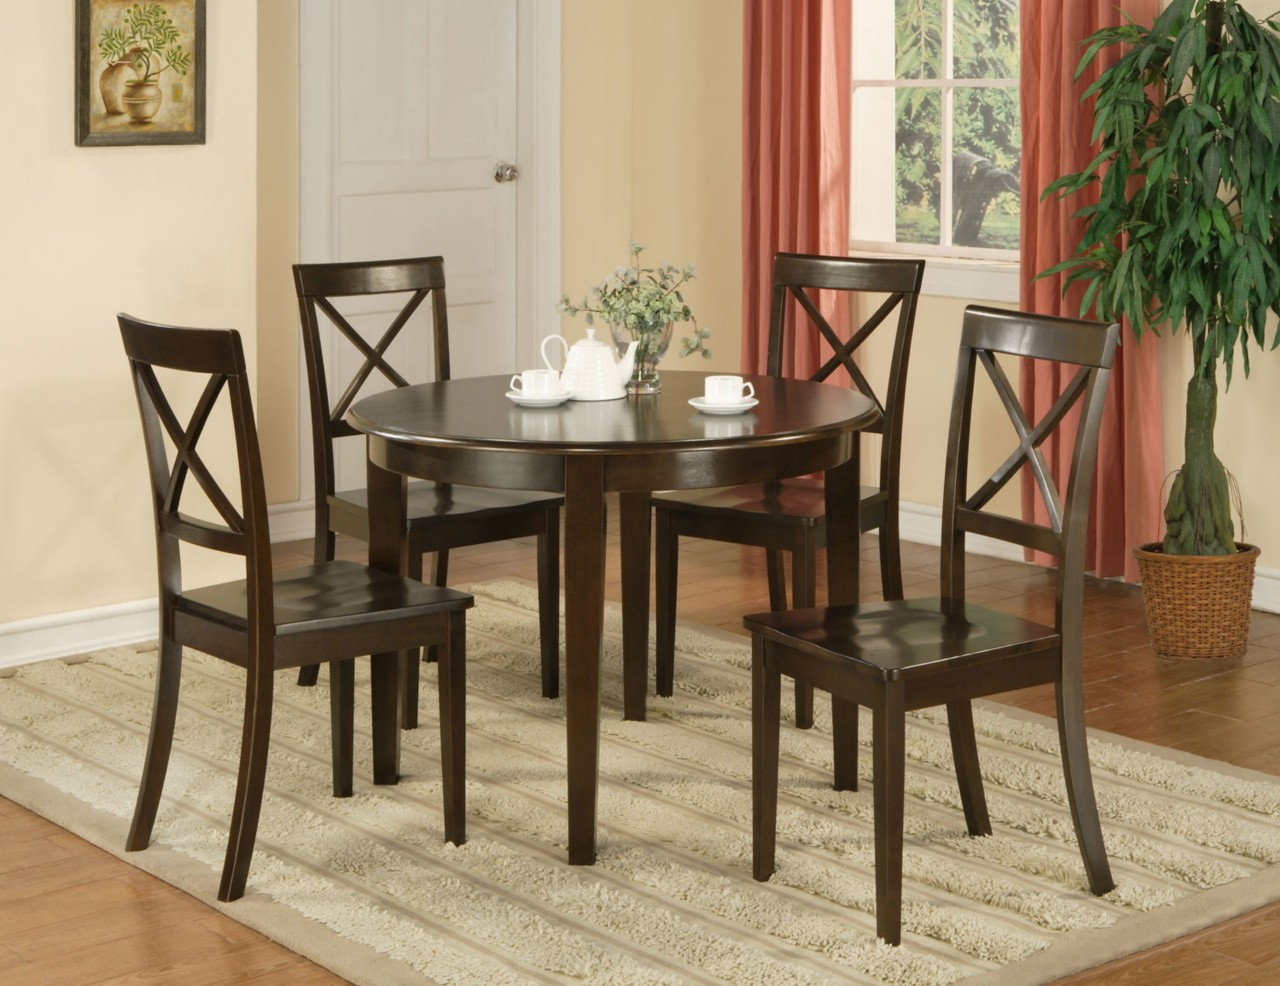 5 PC BOSTON ROUND DINETTE DINING TABLE amp 4 WOOD SEAT  : 481367999o from www.ebay.com size 1280 x 986 jpeg 248kB